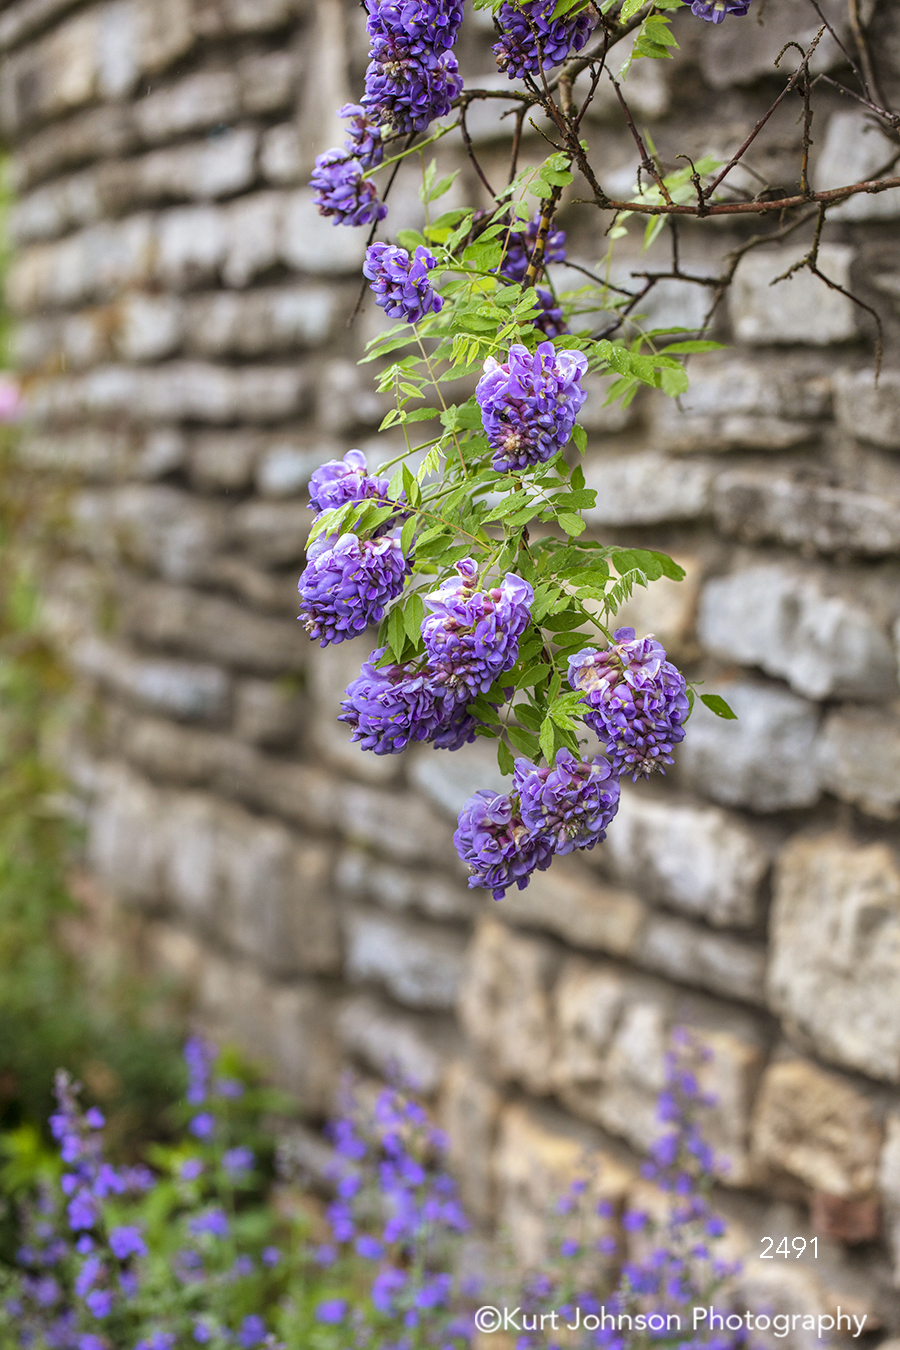 south southeast purple lavender flowers vine green leaves brick stone wall